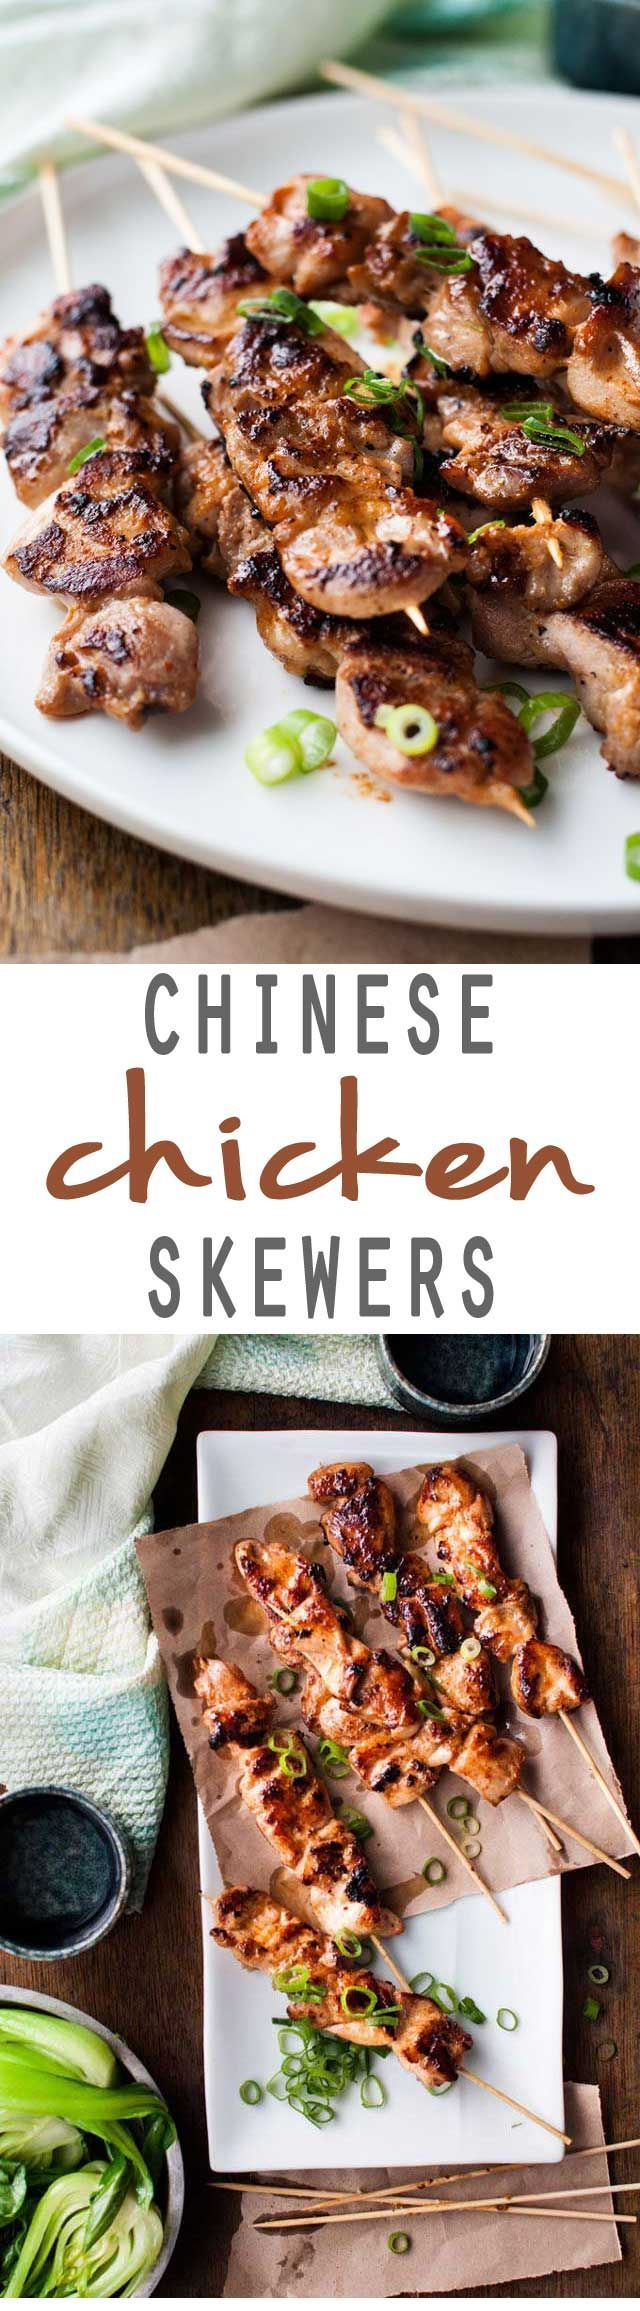 A delicious Asian inspired recipe for Chinese Chicken skewers that's going to knock your socks off! Simple but full of flavor!